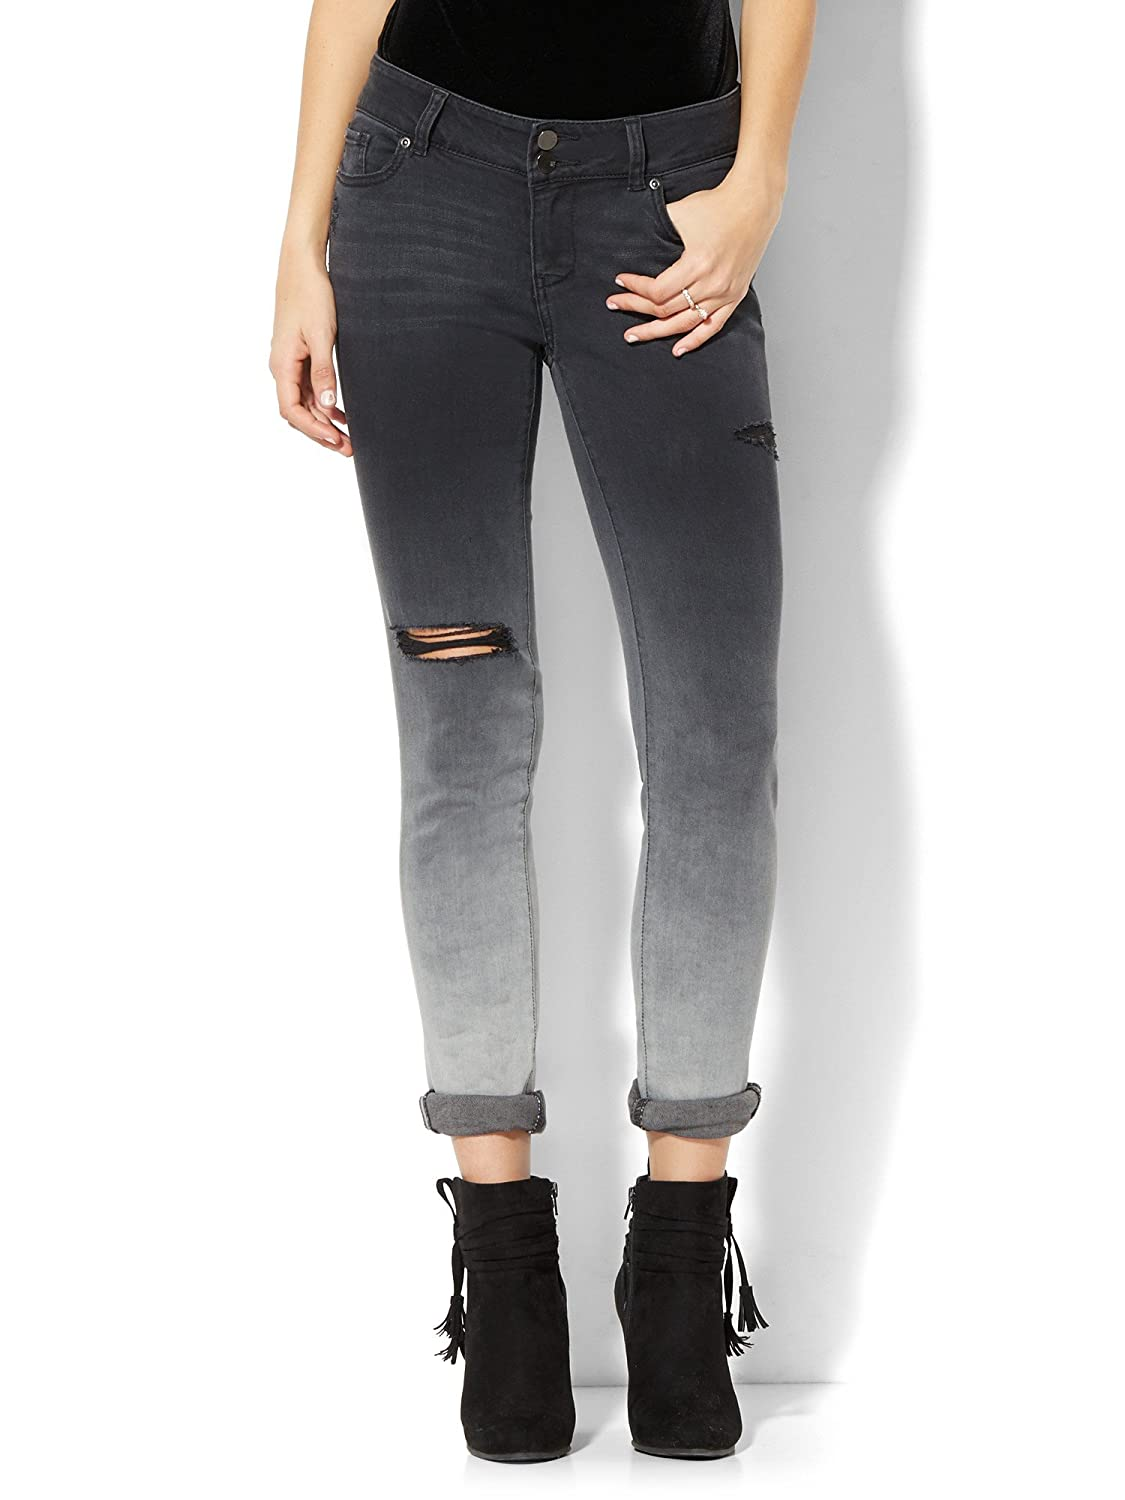 New York & Co. Women's Soho Jeans - Destroyed Boyfriend - Black Ombrac Wash